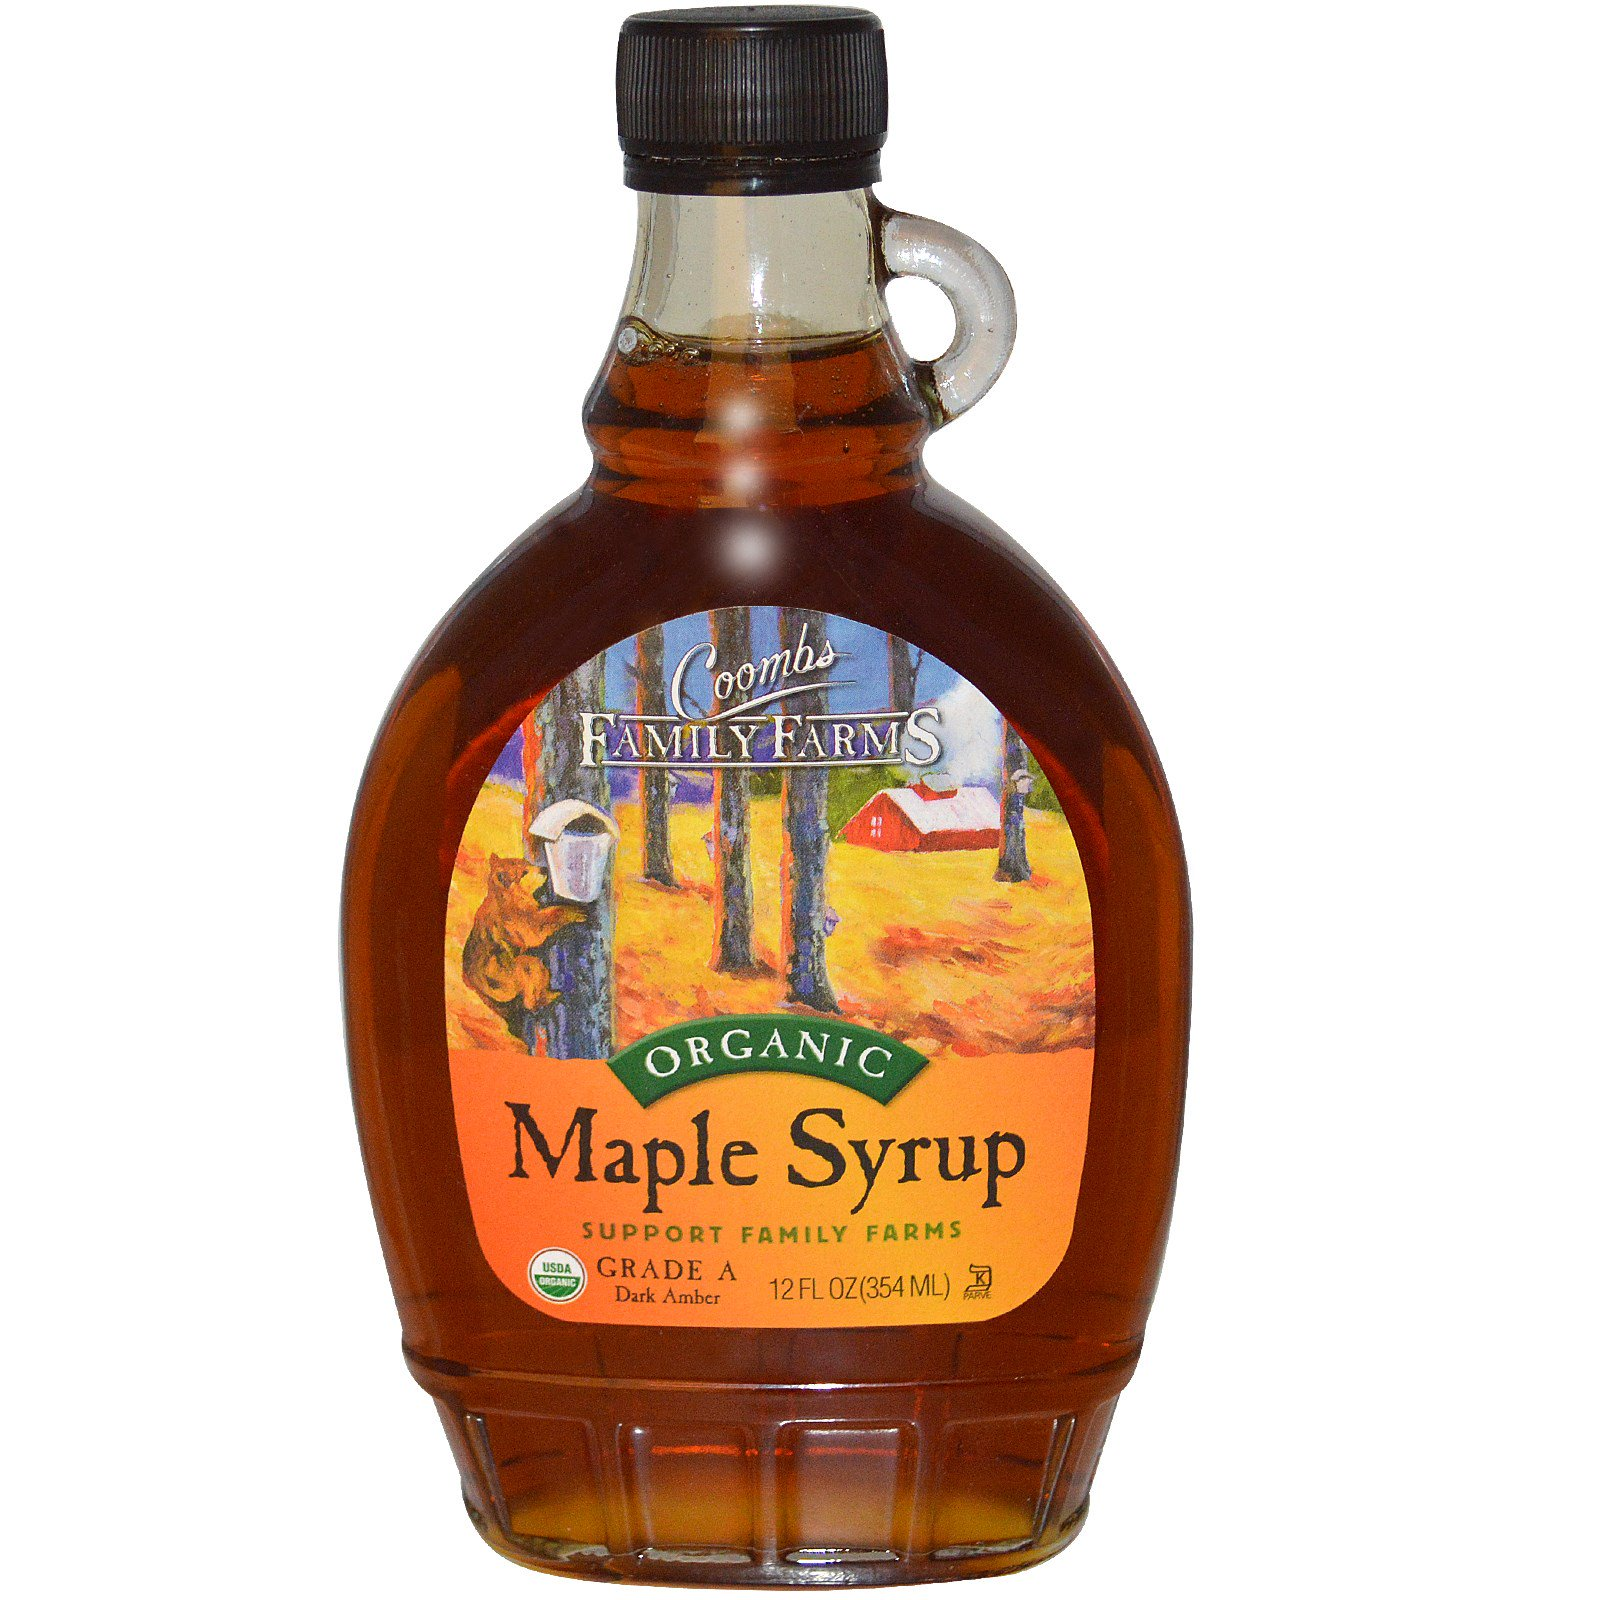 Where to buy organic maple syrup